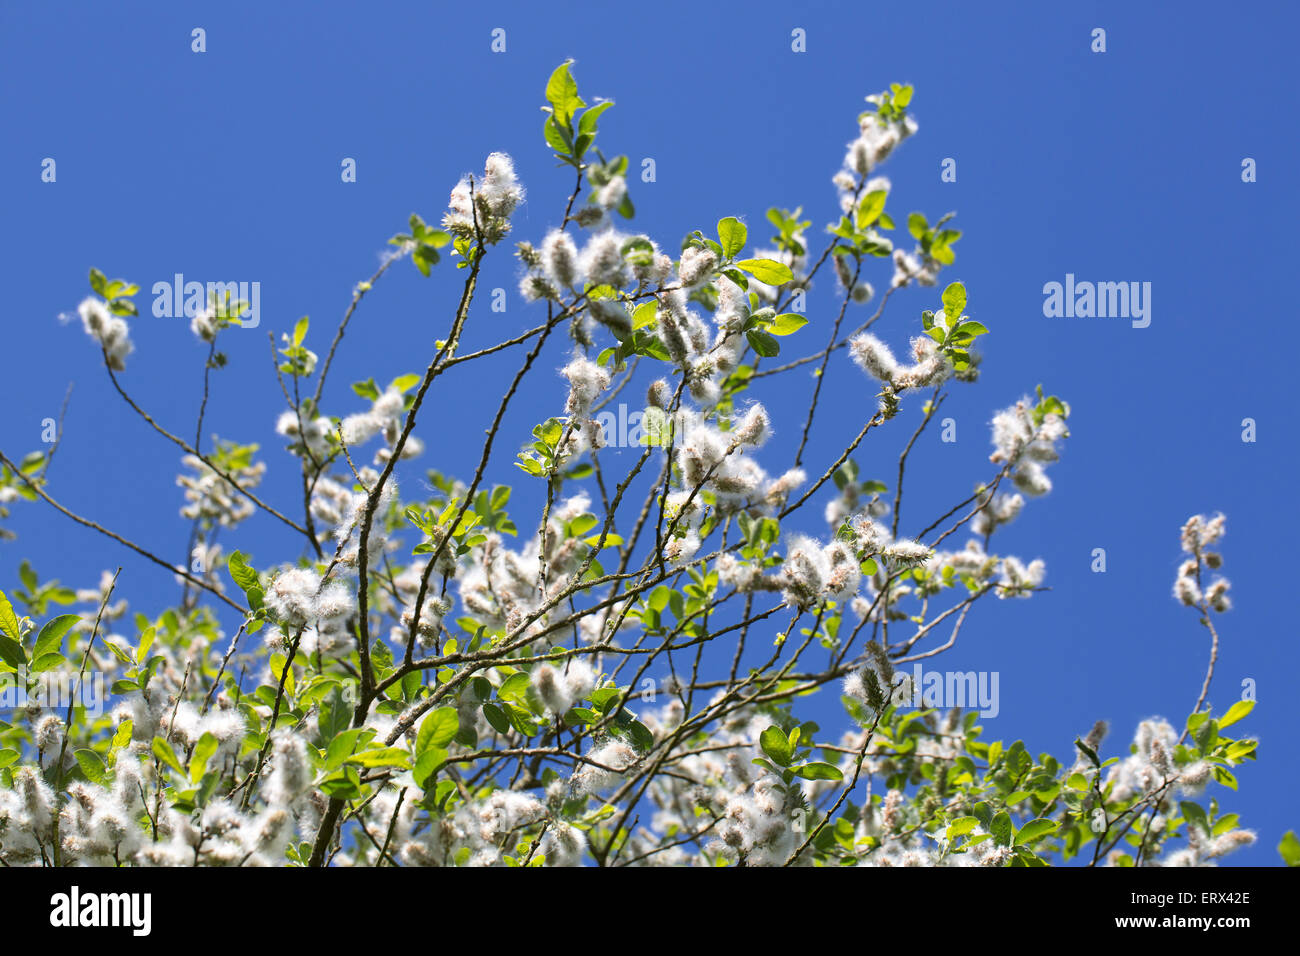 Twig of willow full of seed fluff, blue sky in background - Stock Image